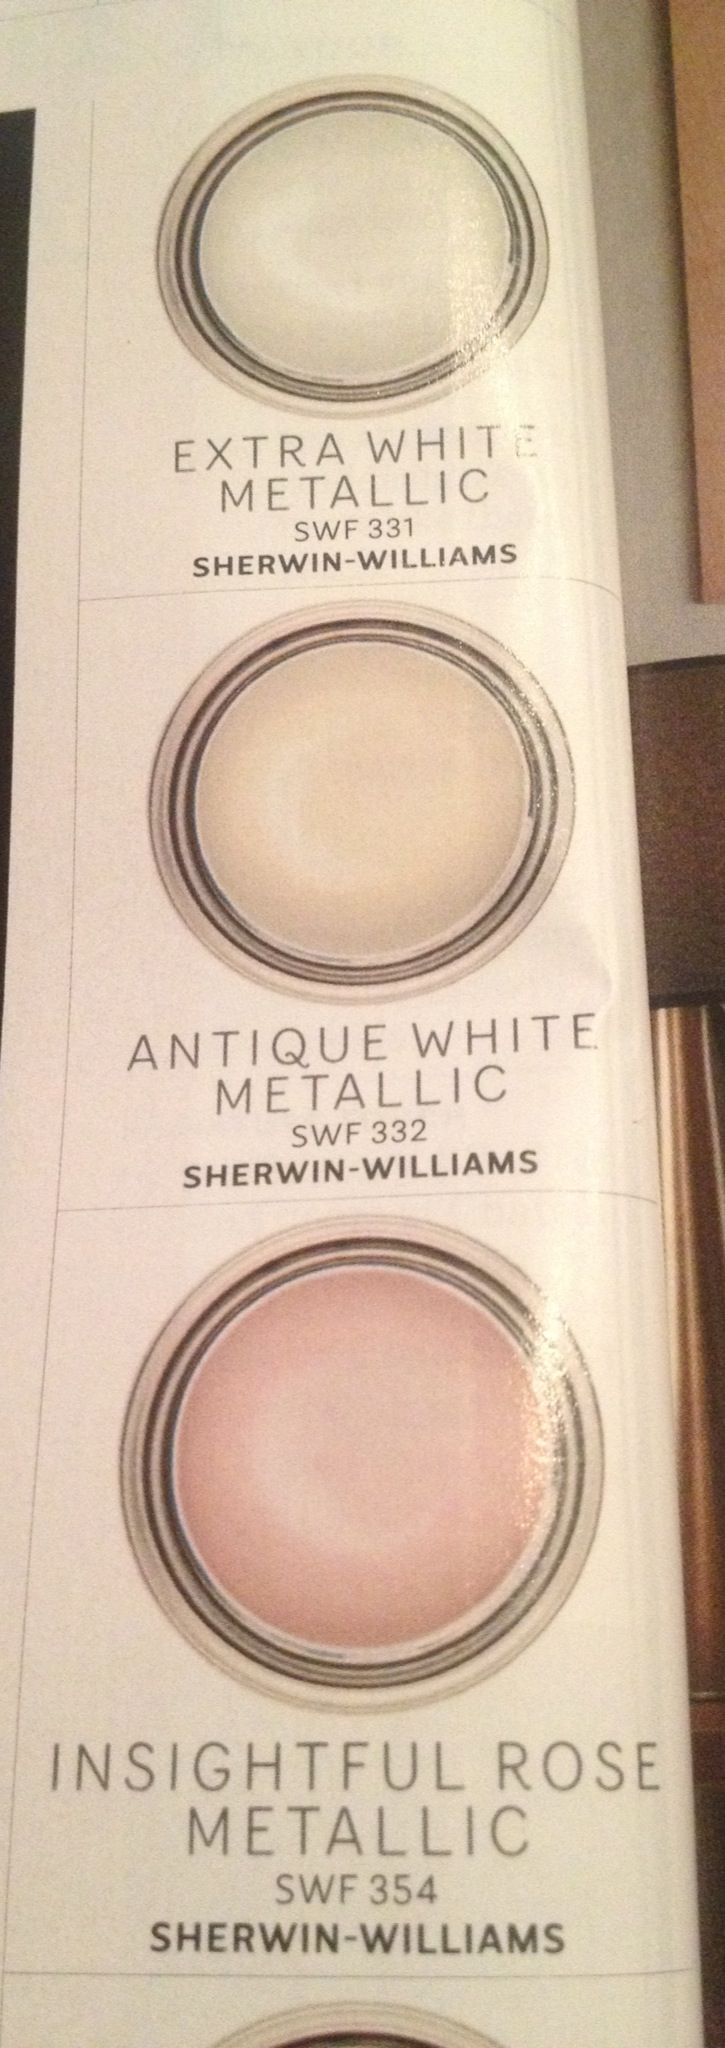 Metallic Paint Colors Sherwin Williams Metallic Paint